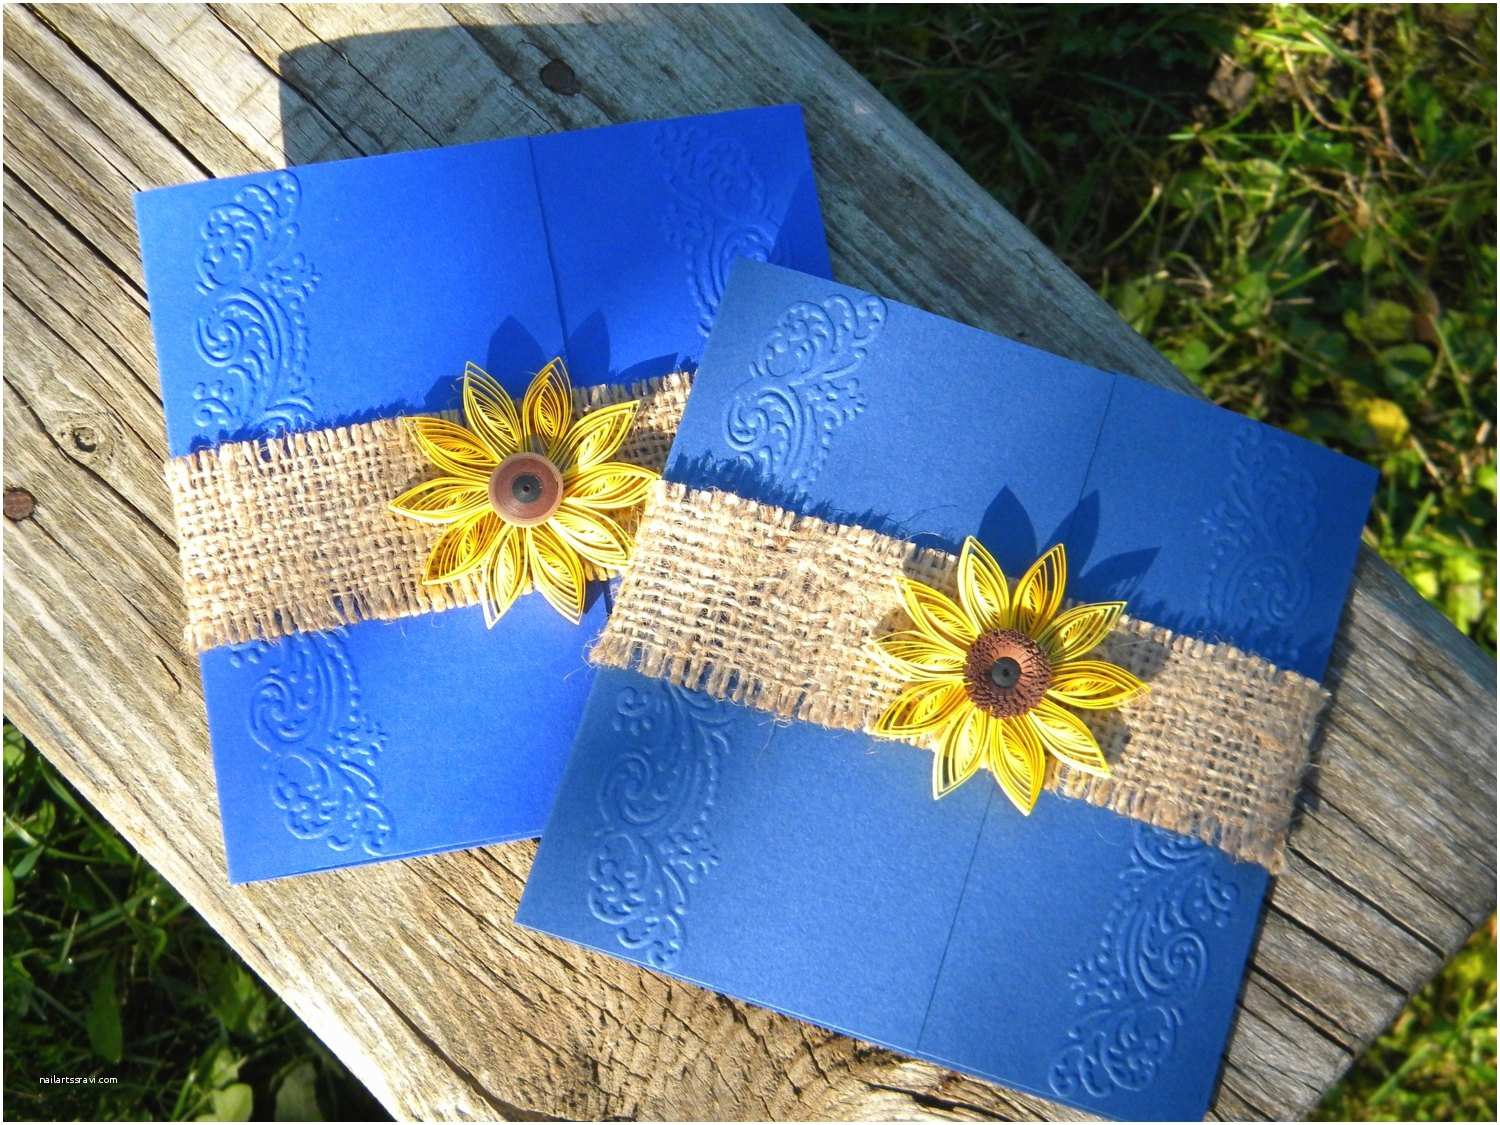 Navy Blue and Sunflower Wedding Invitations Cobalt Blue and Sunflower Wedding Invitation Burlap Wedding